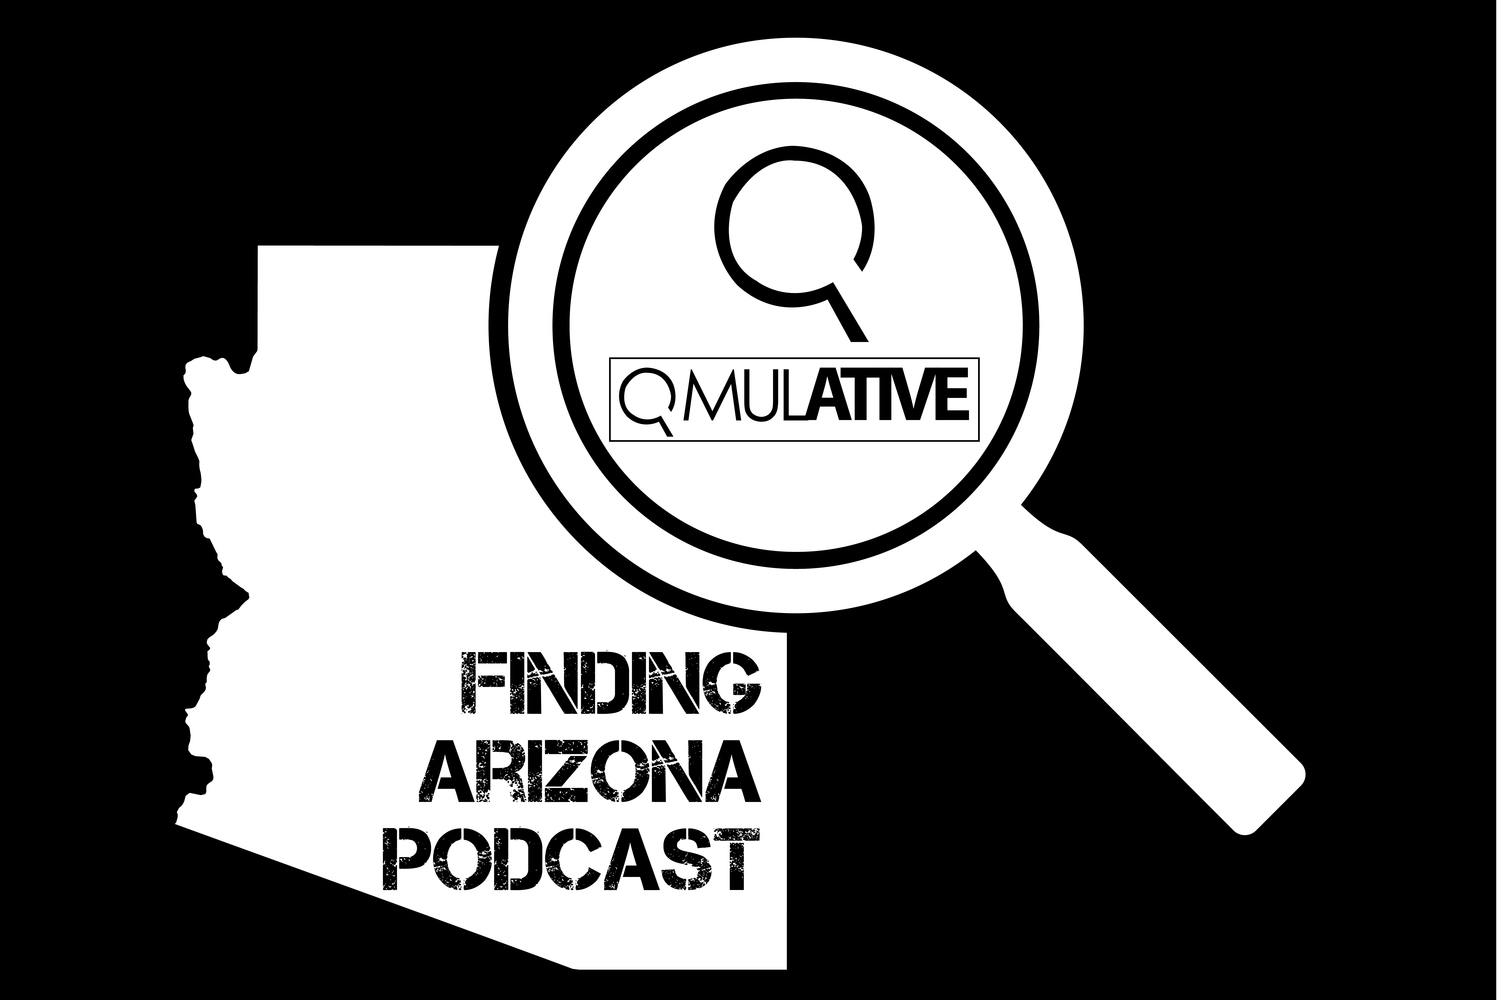 PodCastLogo-qmulative.jpg